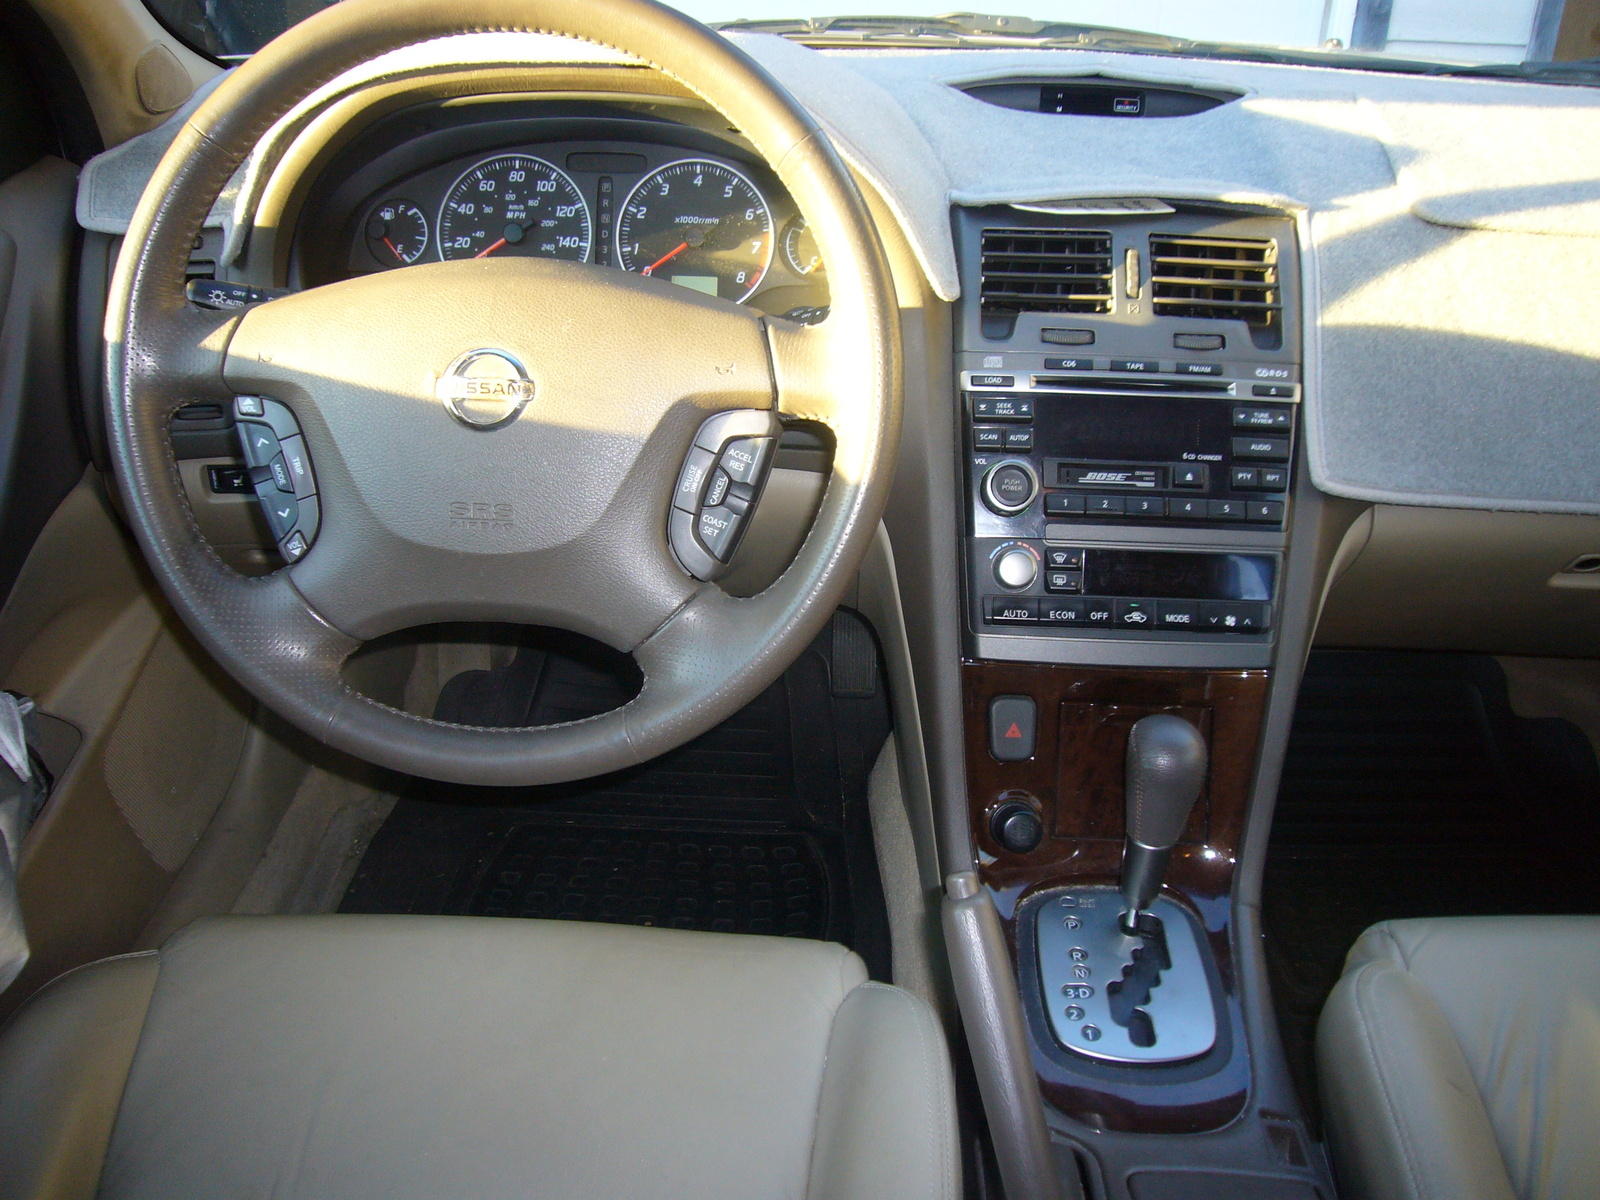 2002 nissan altima interior gallery hd cars wallpaper car picker nissan prairie interior images prairie interior image vanachro gallery vanachro Image collections